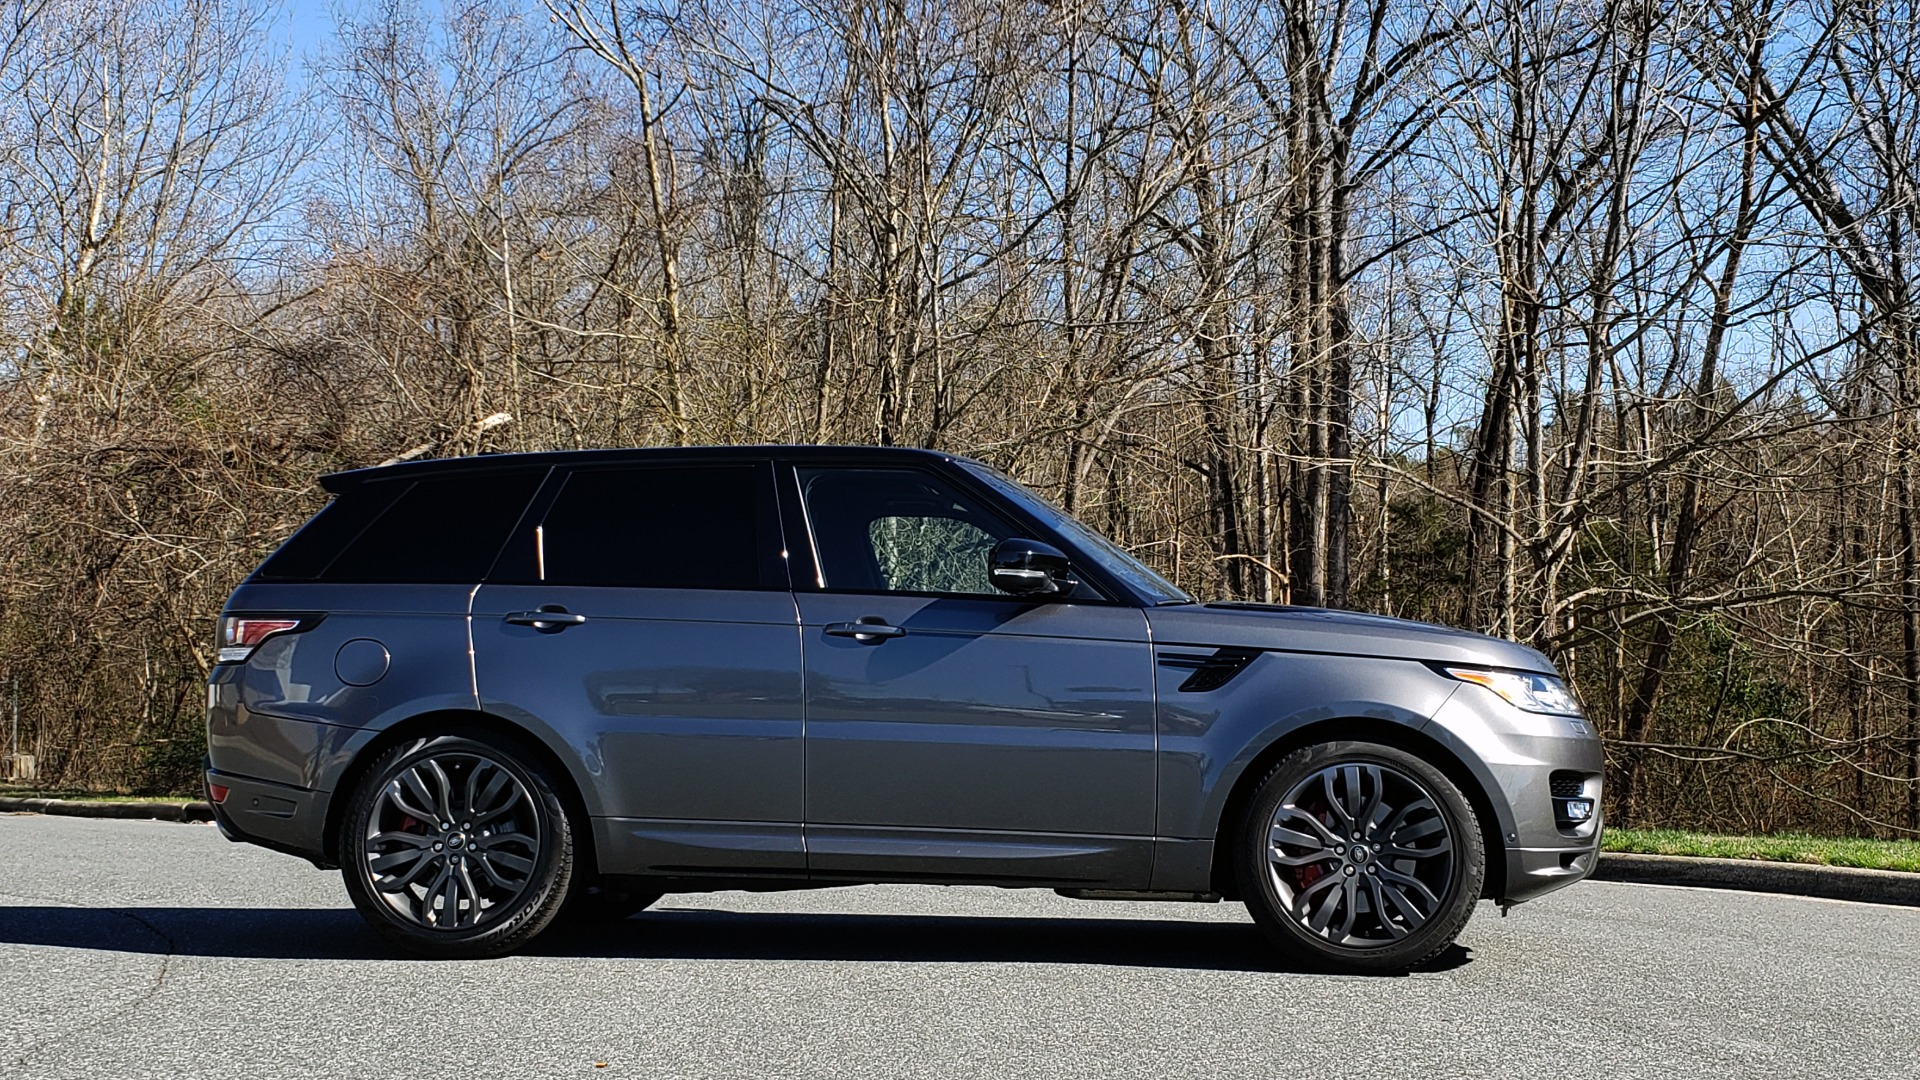 Used 2017 Land Rover RANGE ROVER SPORT HSE DYNAMIC / NAV / SUNROOF / REARVIEW for sale Sold at Formula Imports in Charlotte NC 28227 5